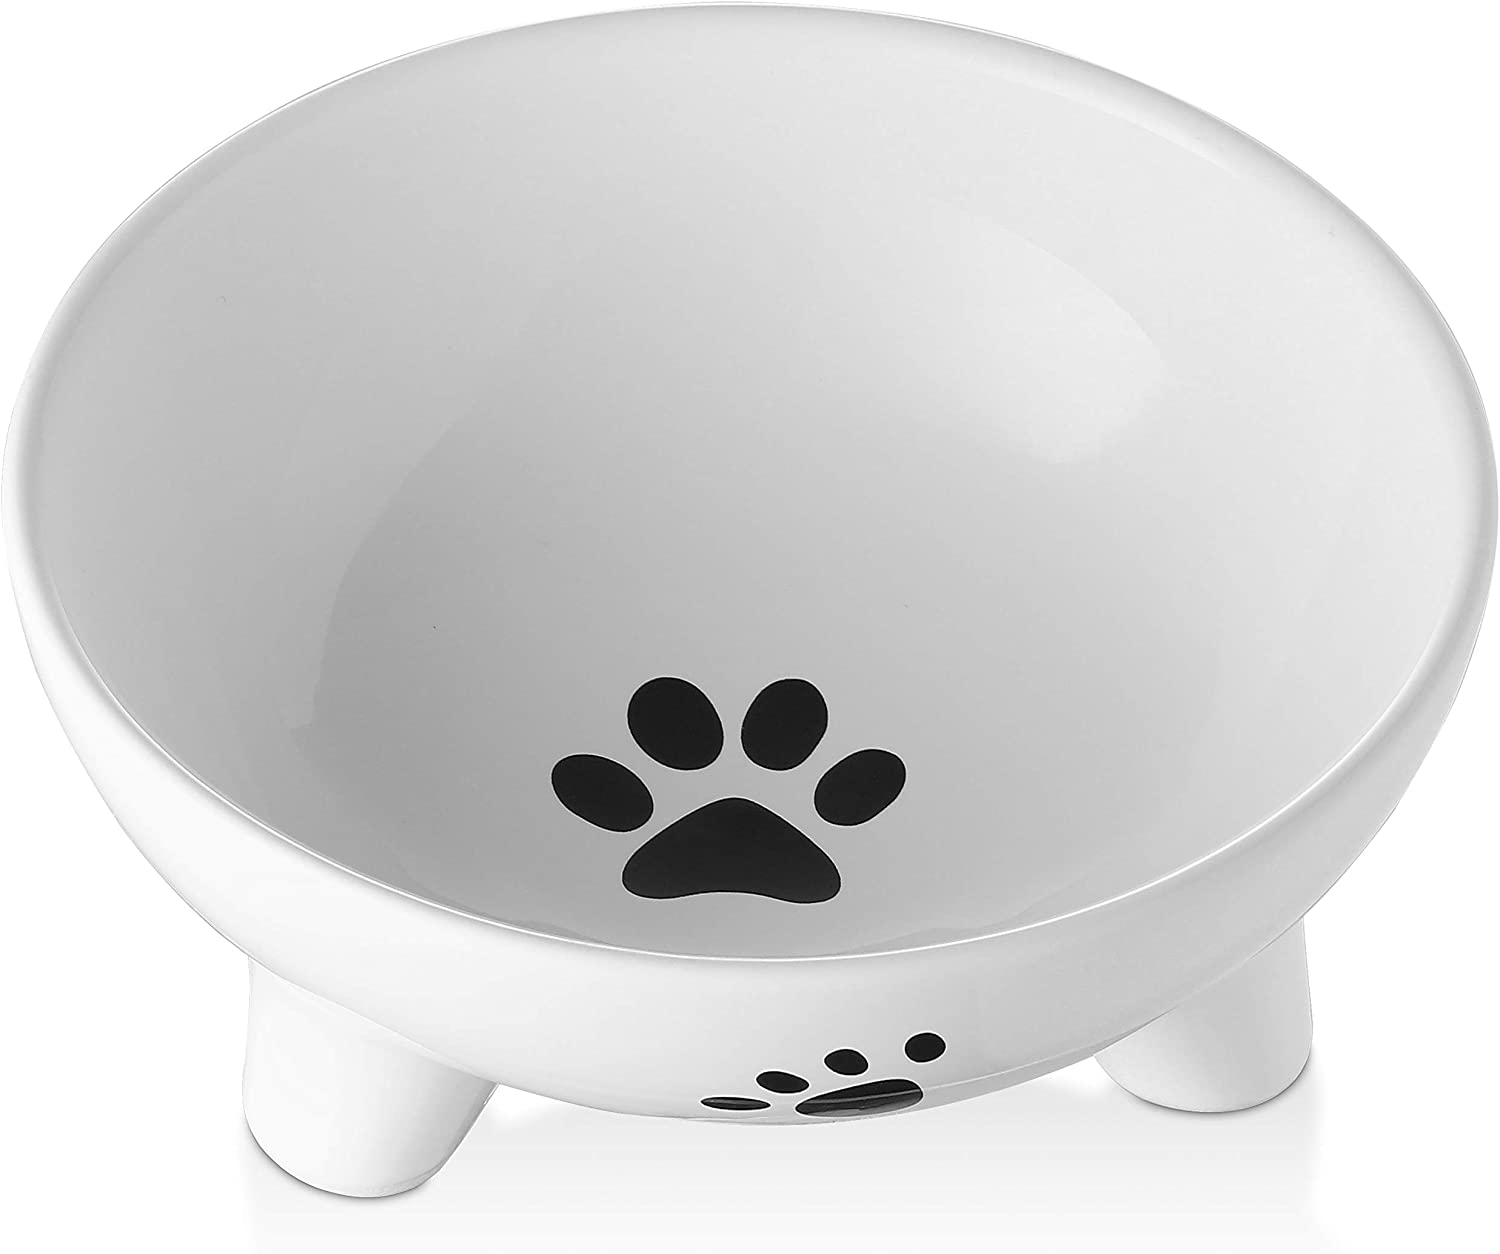 Y YHY Pet Bowls for Cats and Small Dogs,27 Ounces Ceramic Small Dog Bowls,Elevated Cat Bowl Anti Vomiting,Raised Cat Food Dish,Microwavable and Dishwasher Safe,White